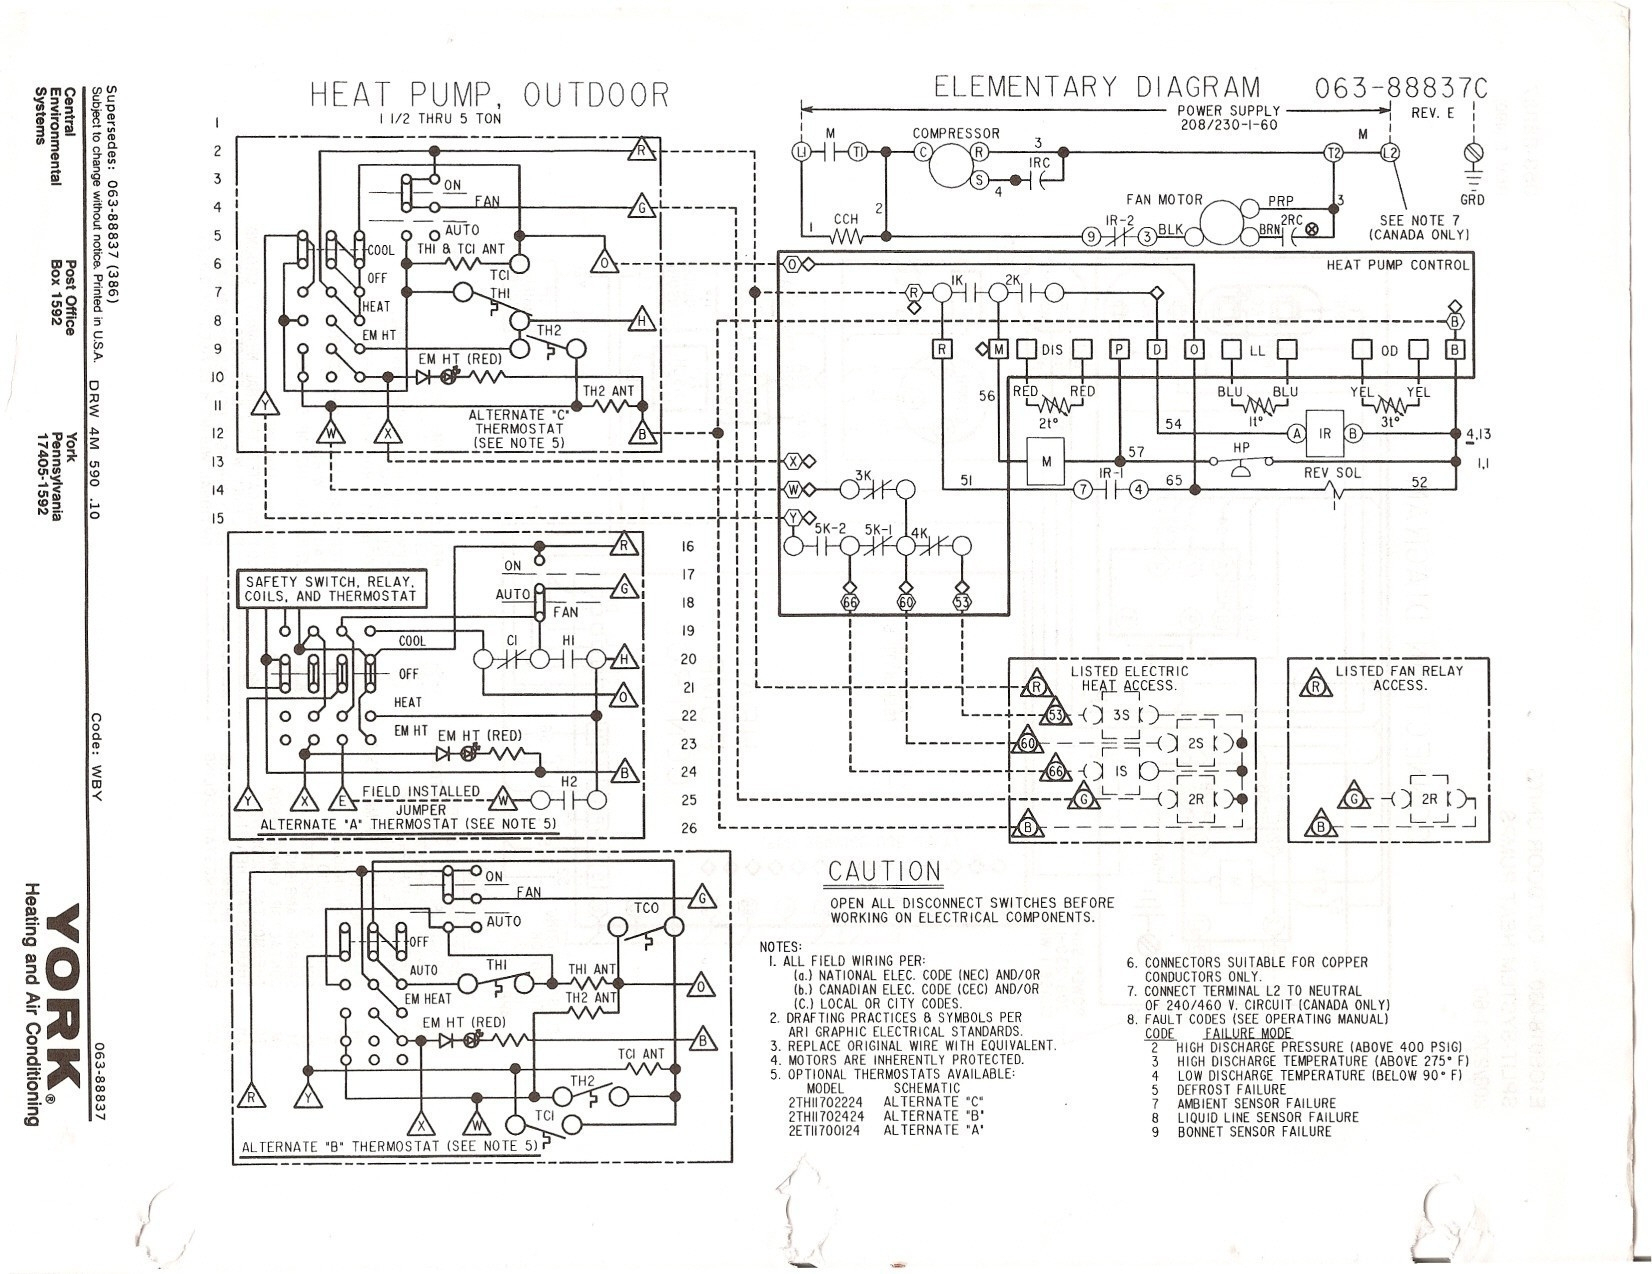 Goodman Air Handler To Heat Pump Wiring Diagram - Wiring Diagram Name - Goodman Air Handler Wiring Diagram